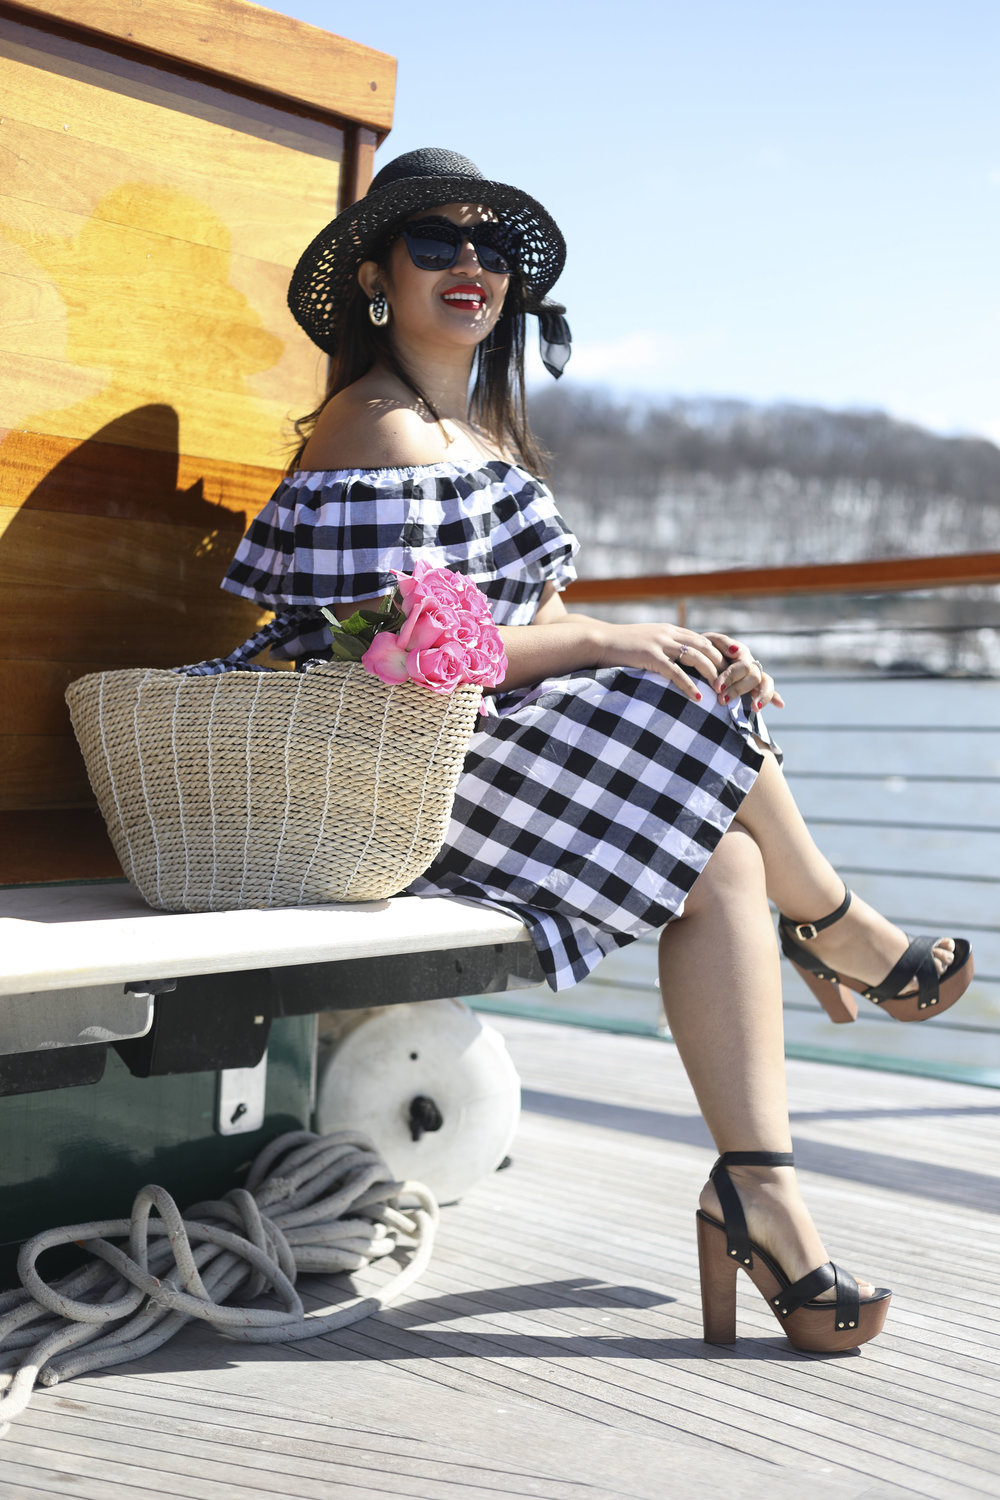 Krity S x Make Me Chic x Harbor Line Cruise1.jpg